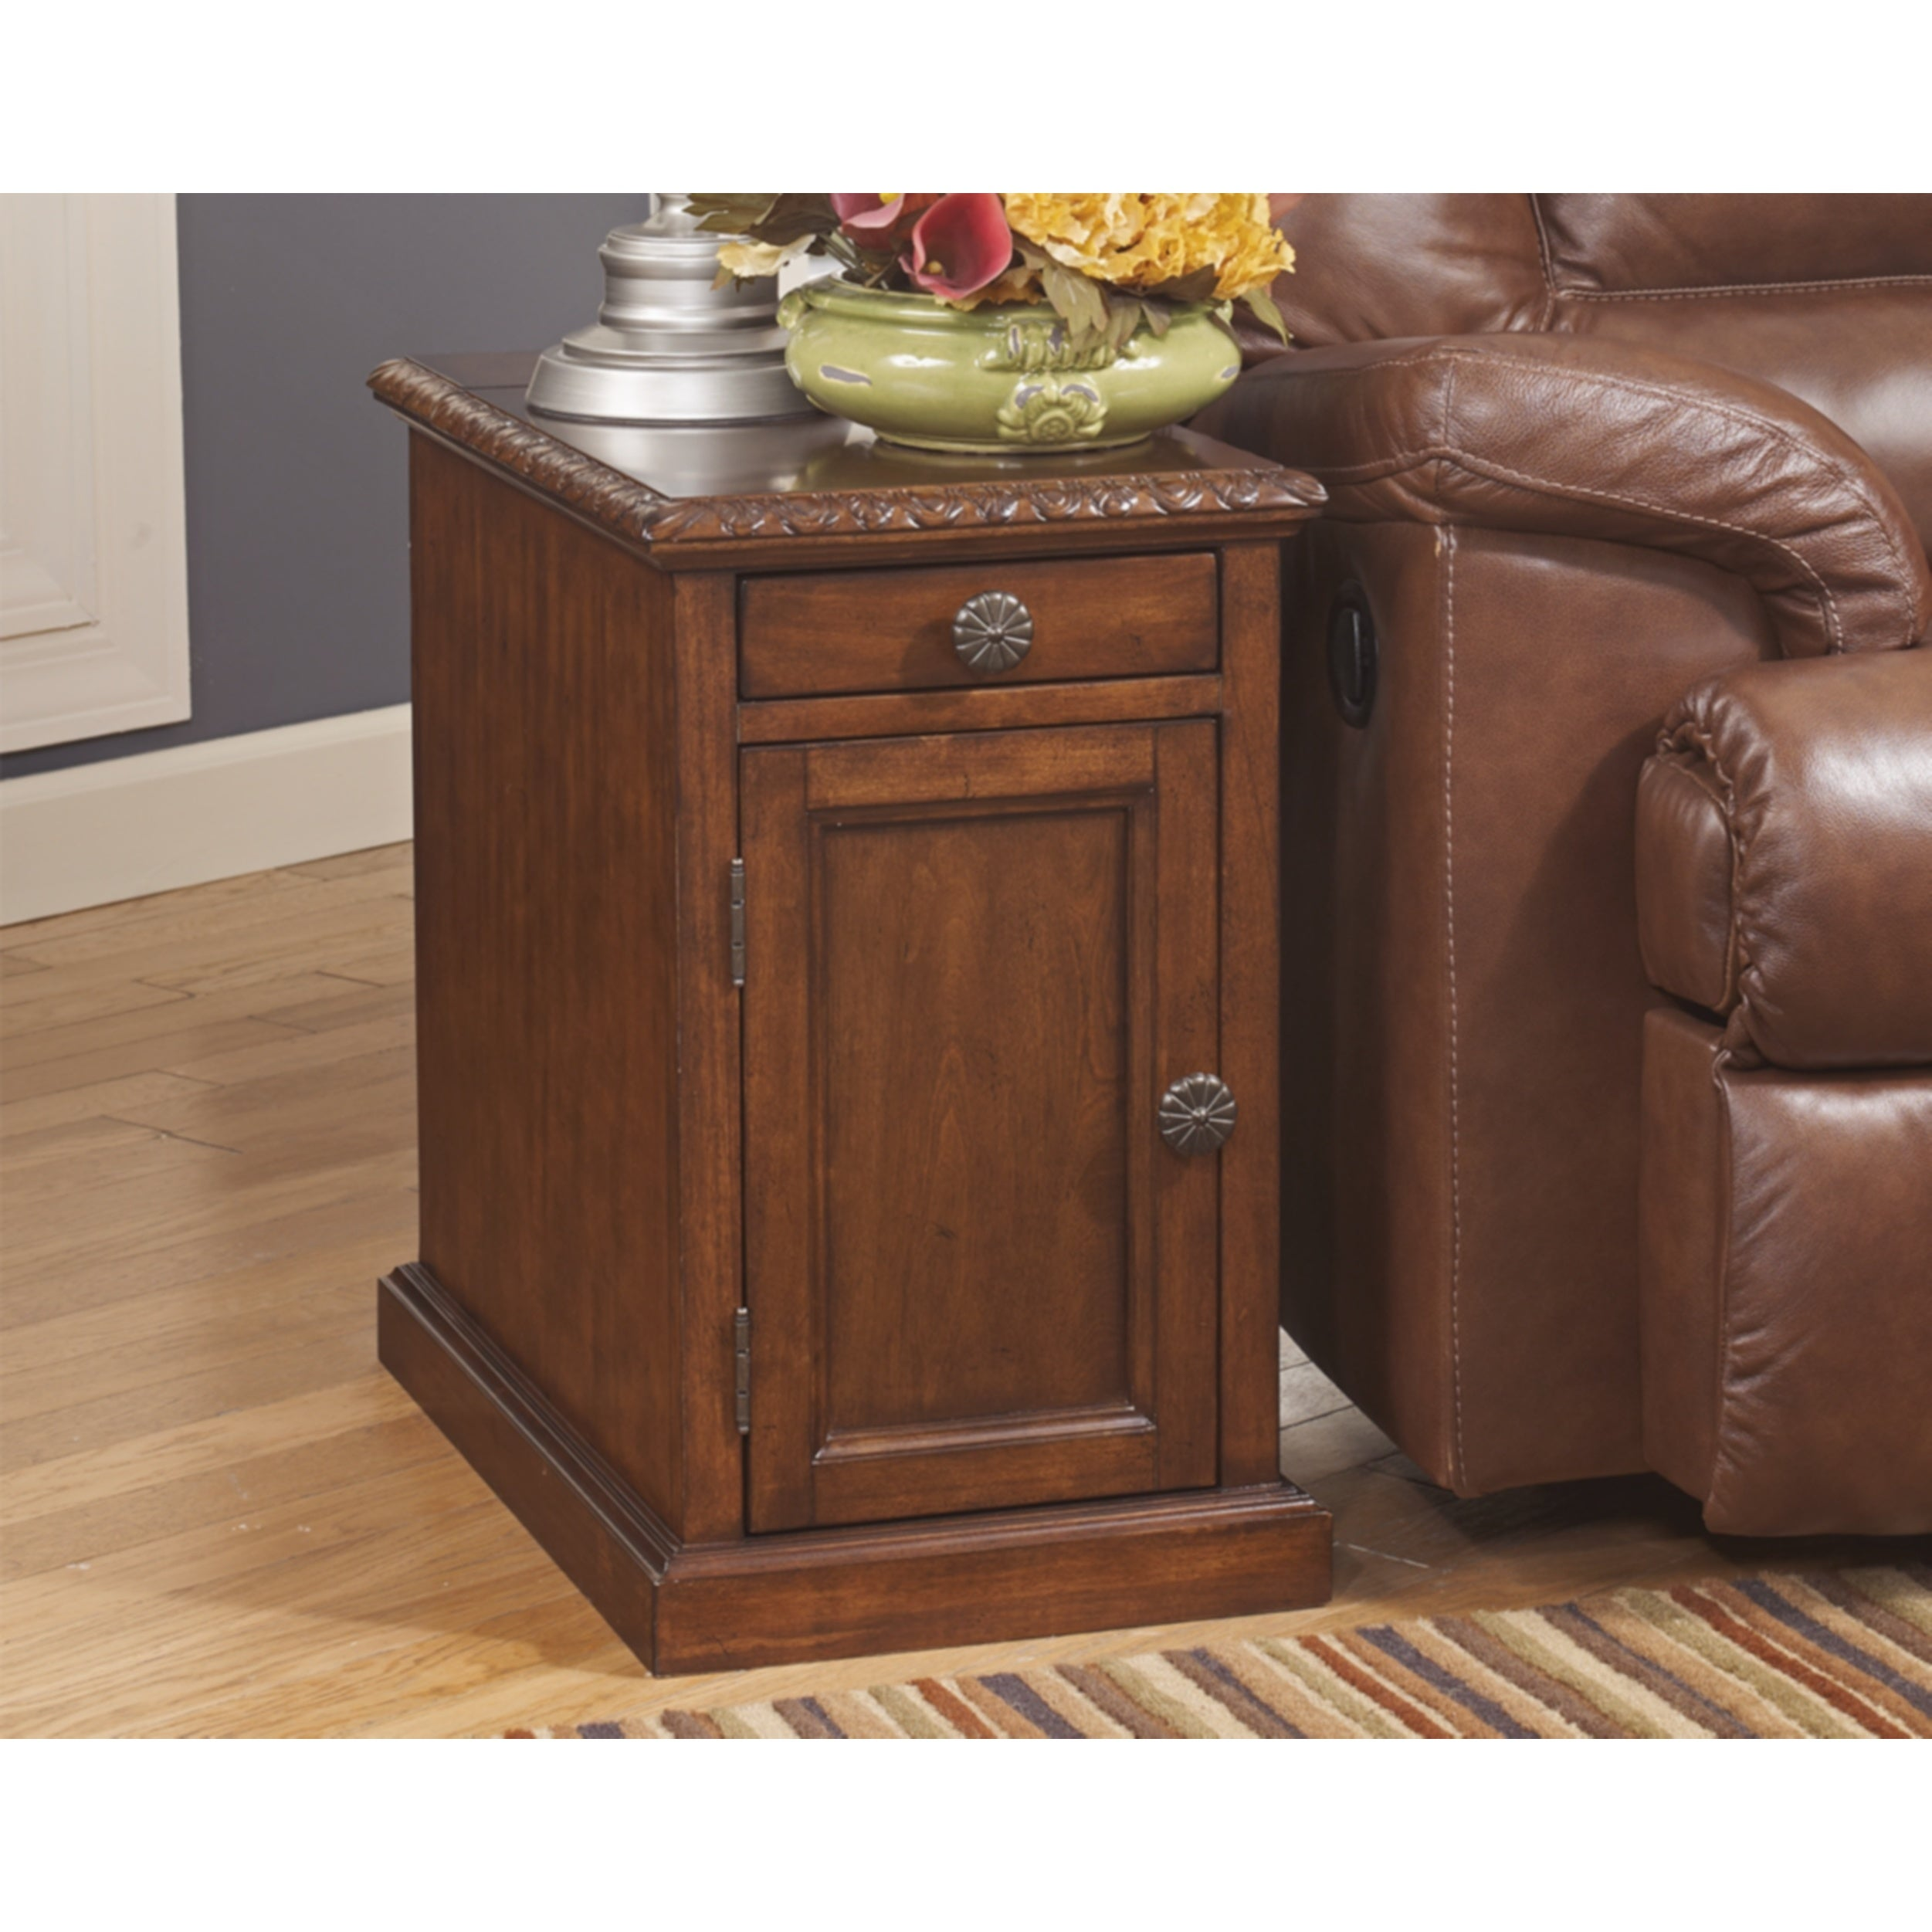 Shop Copper Grove Morvan Chairside End Table Overstock 21490191